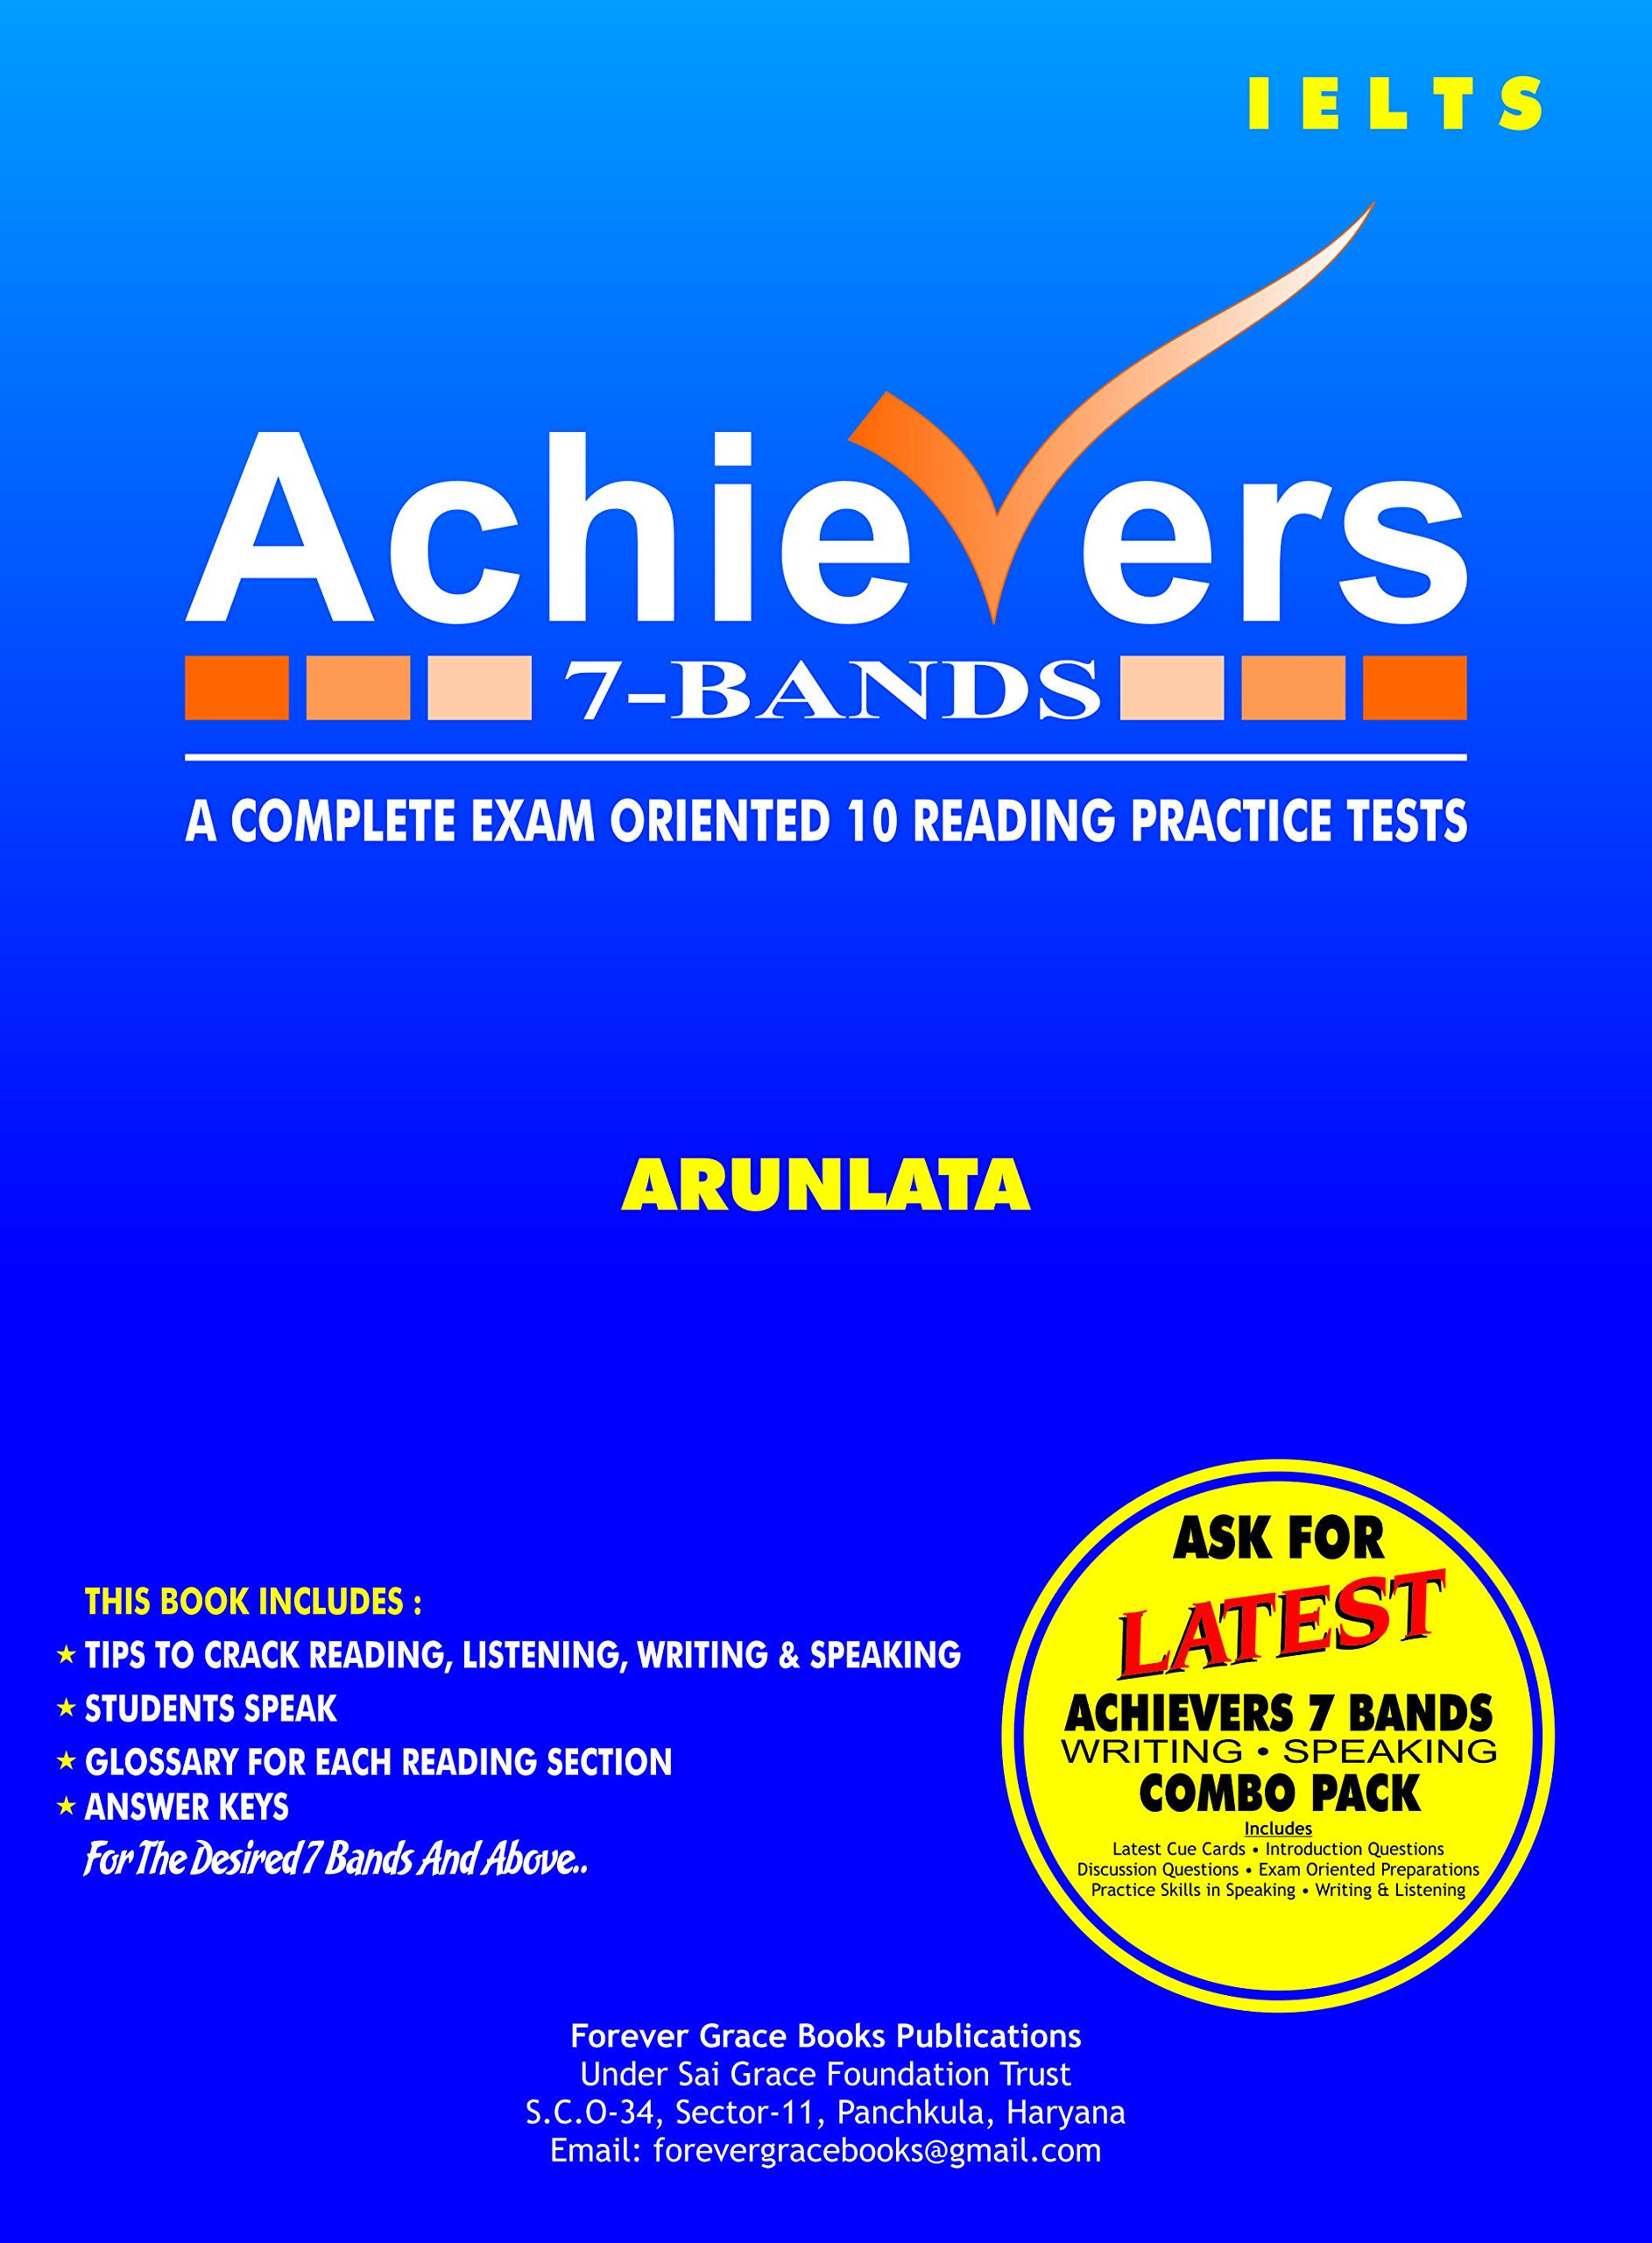 Amazon in: Buy IELTS Achievers 7-Bands 4 in one combo Pack